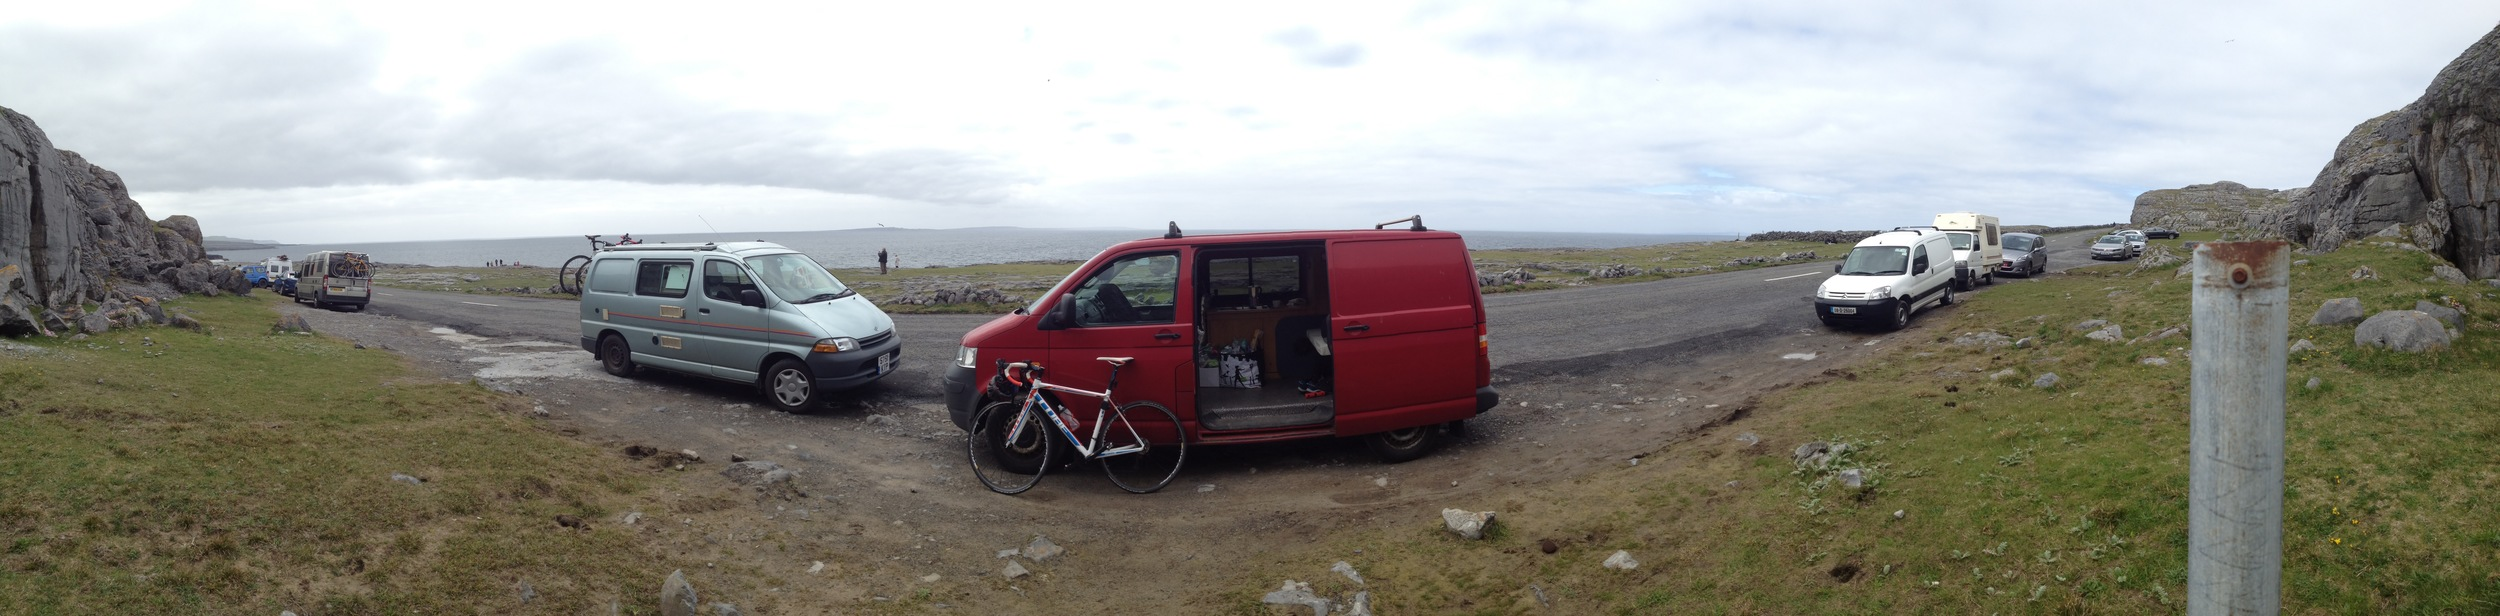 Just another van in Clare. The era of camper vans is well and truly here in Ireland.